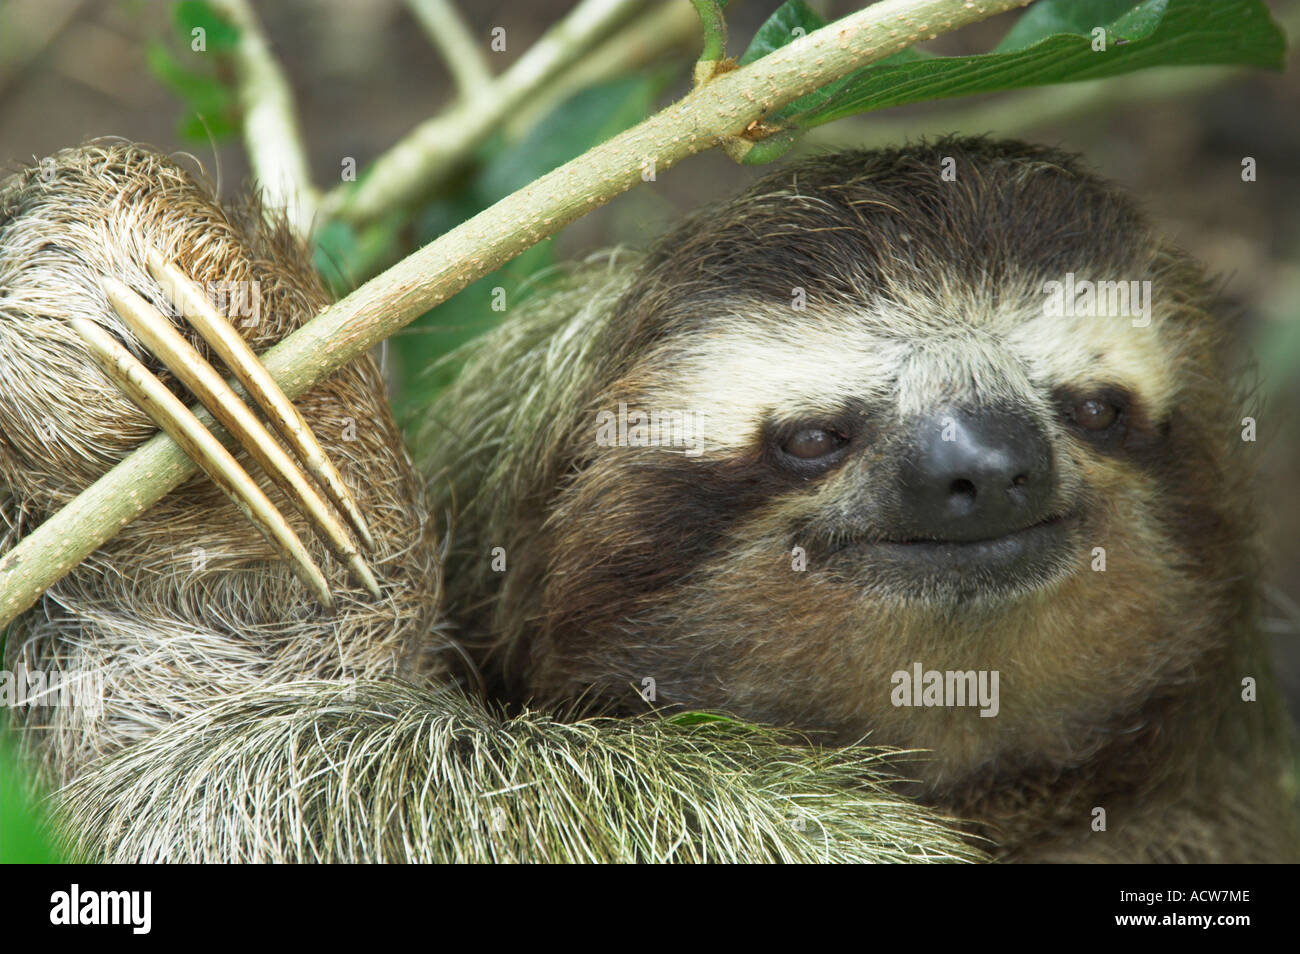 A closeup of a three toed sloth face in a tree near Puerto Limon, Costa Rica Stock Photo